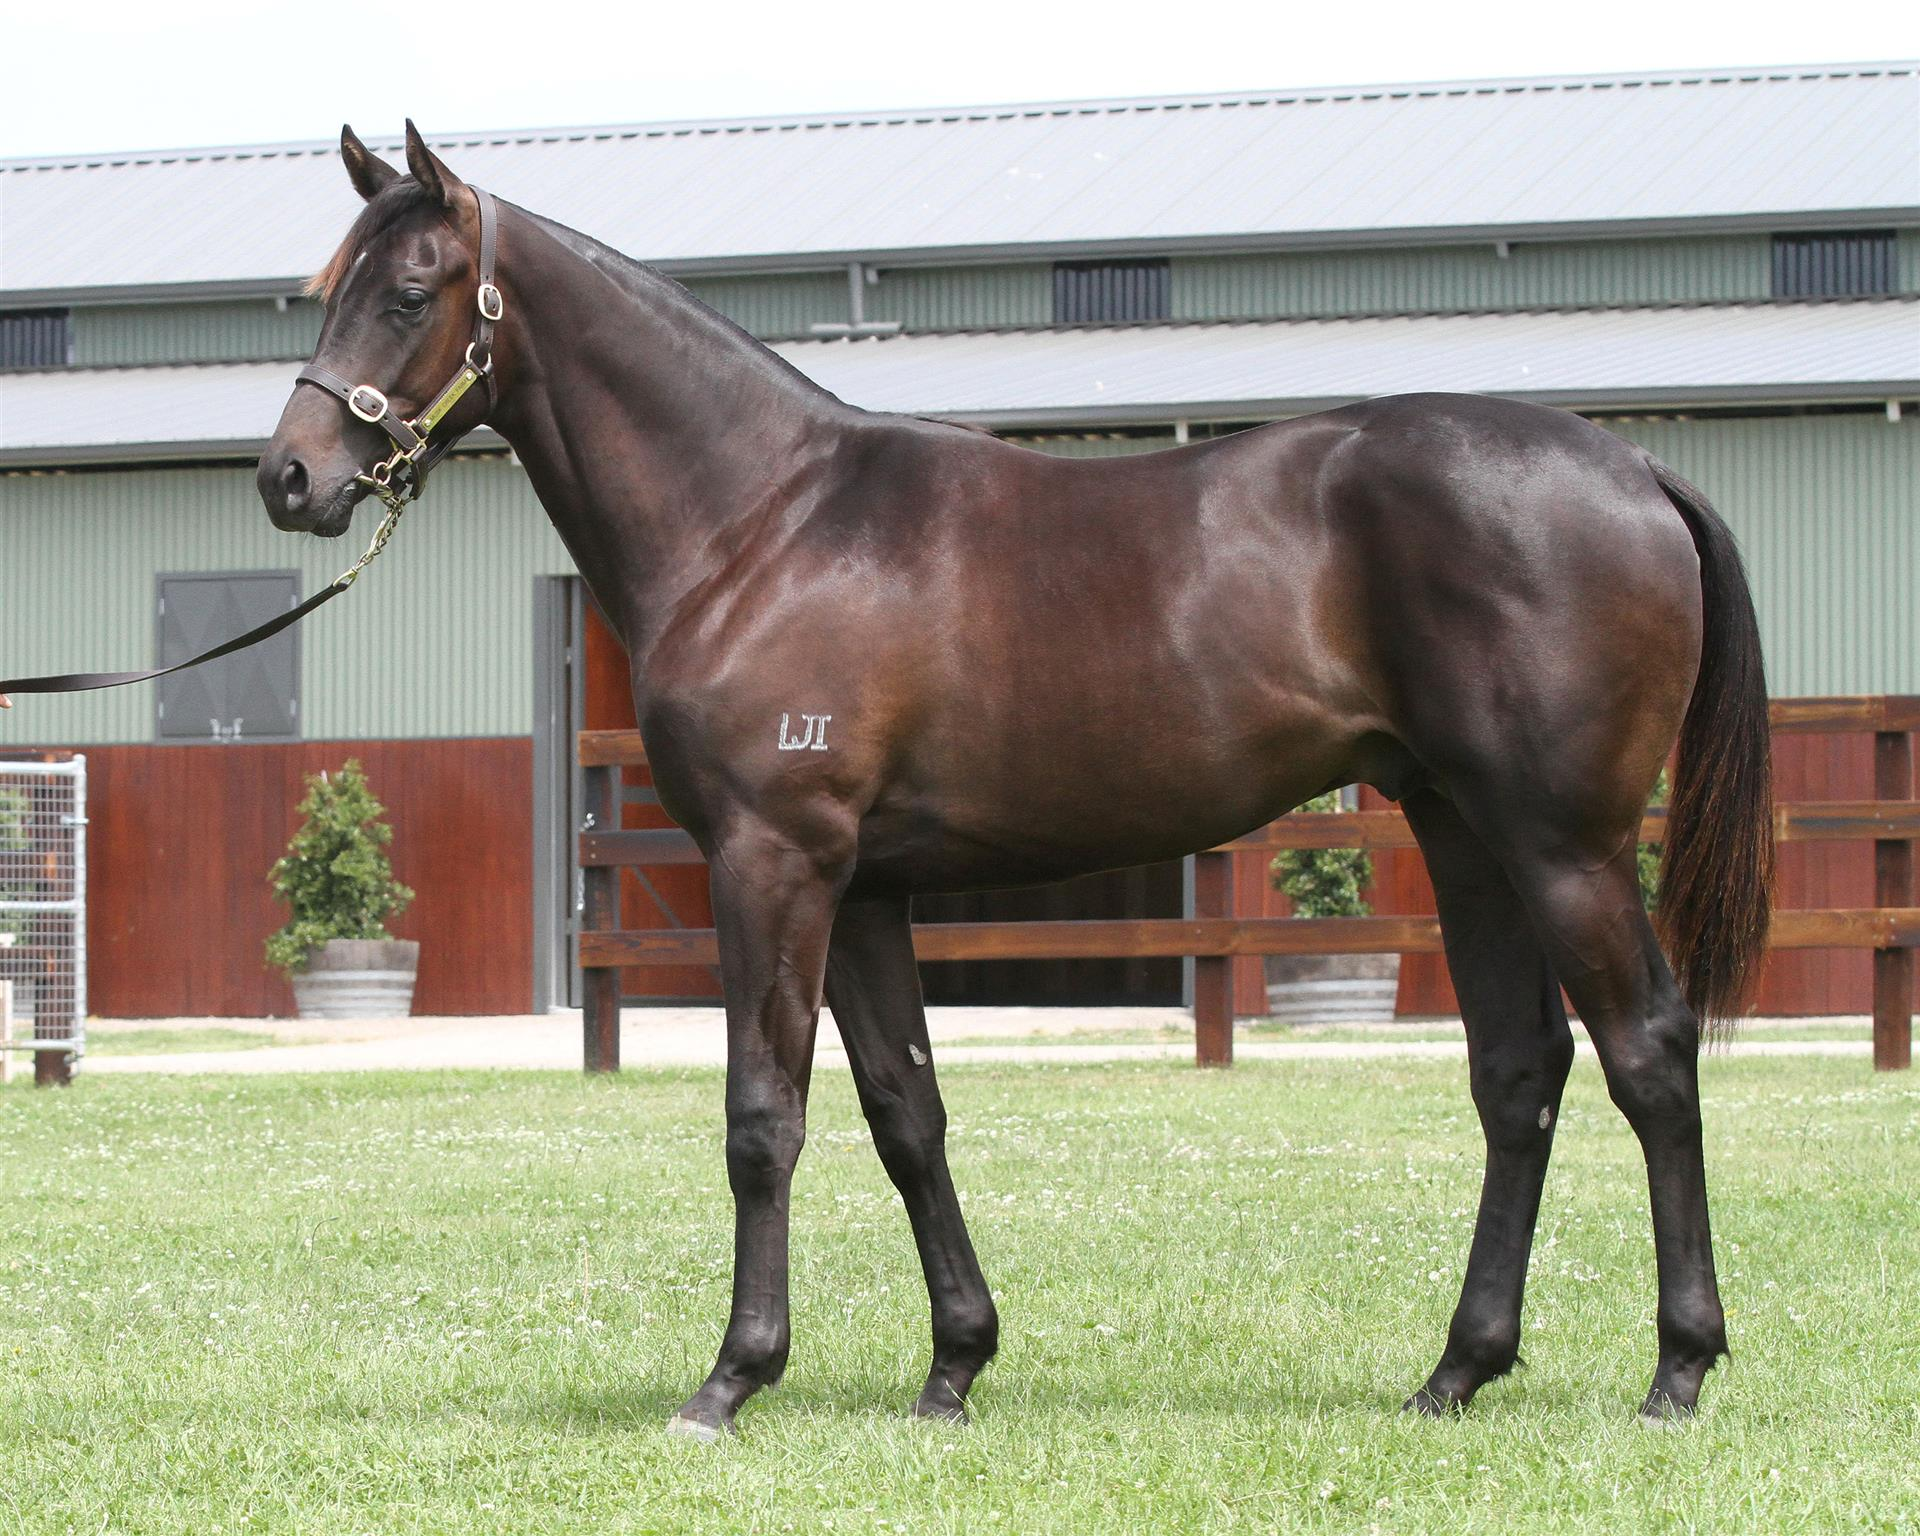 Lot 666 Magic Millions Gold Coast - Foxwedge x Tellora